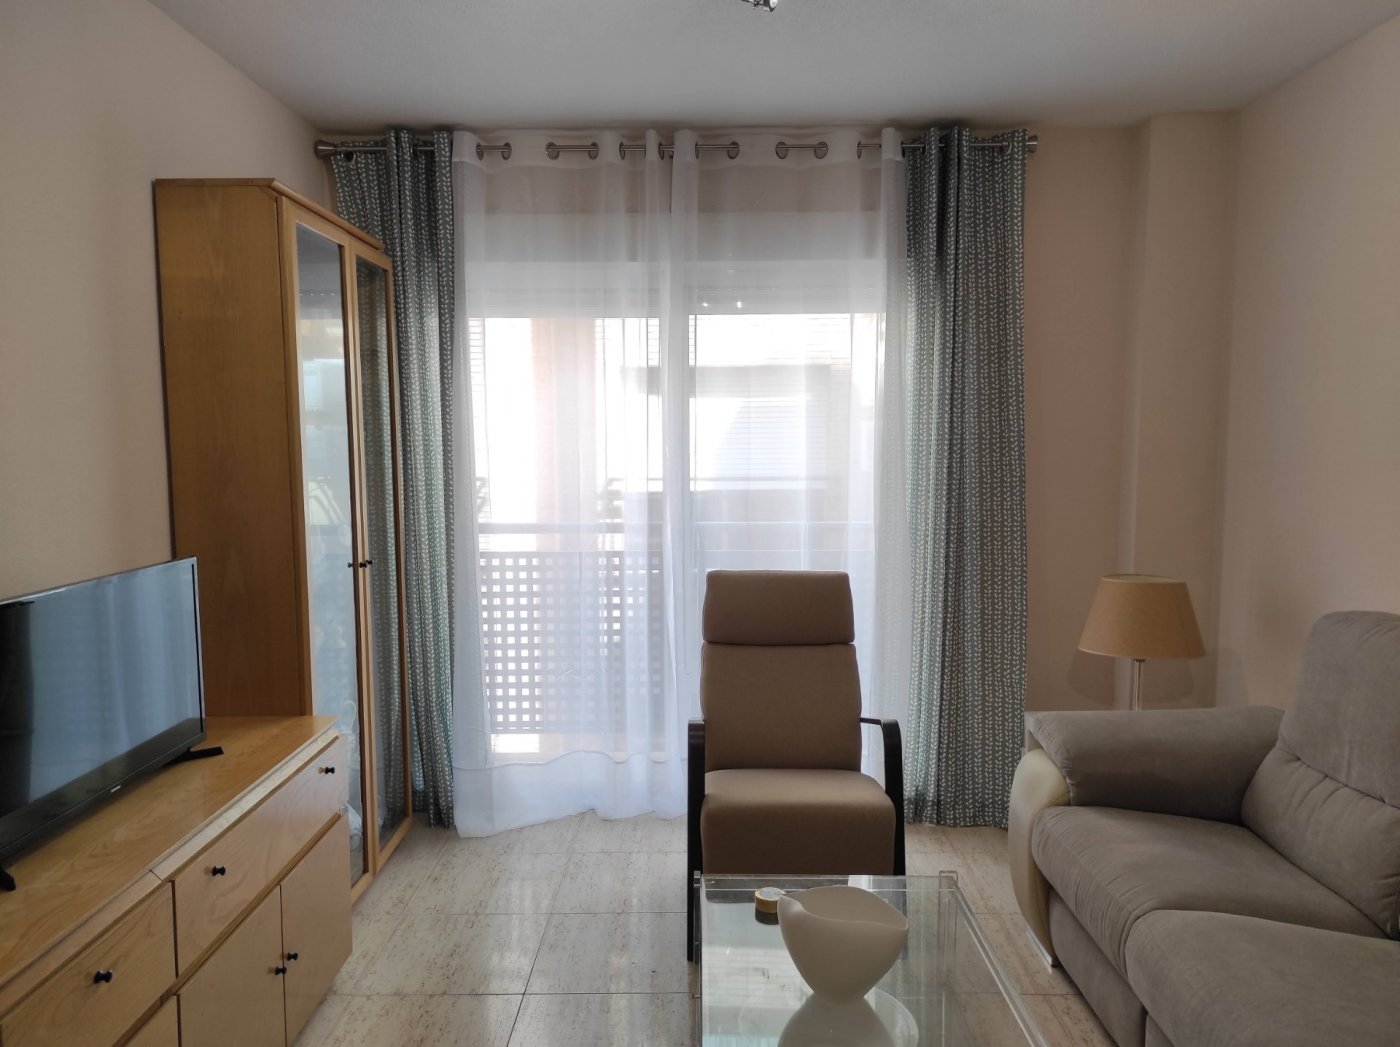 Flat ref 3531 for rent in Barrio Del Carmen Spain - Quality Homes Costa Cálida